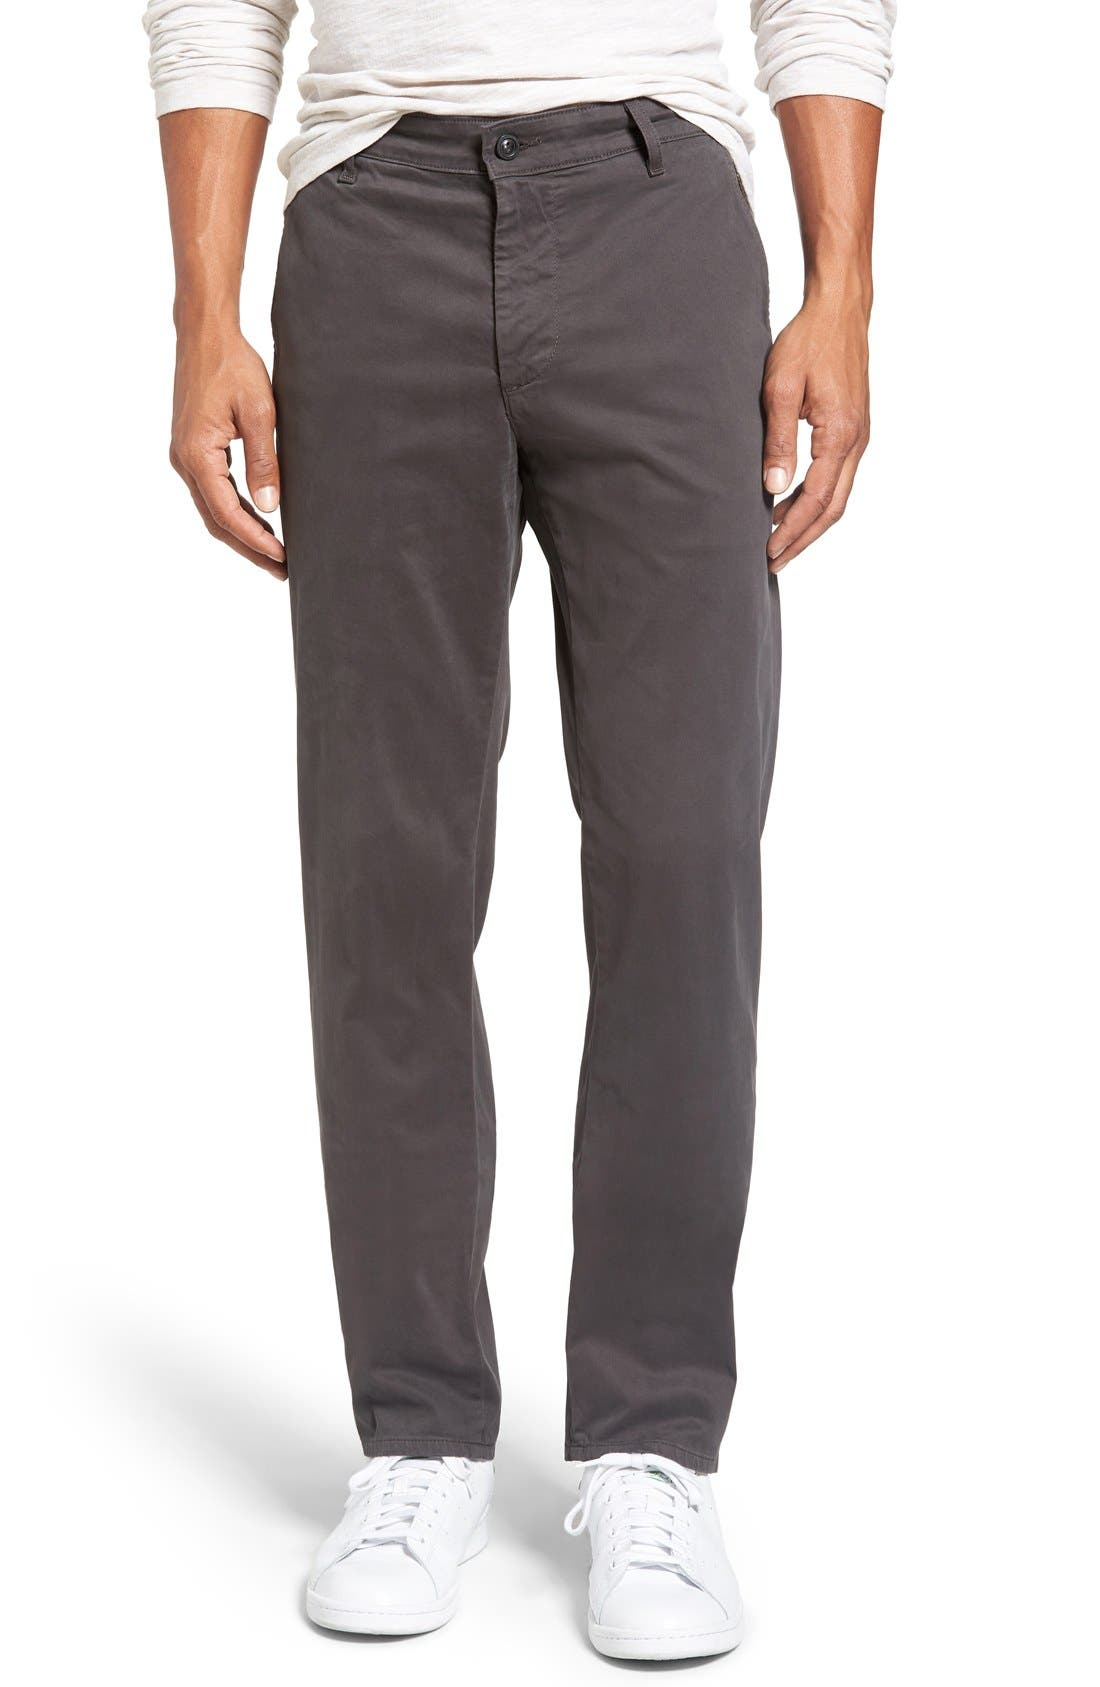 Main Image - AG 'The Lux' Tailored Straight Leg Chinos